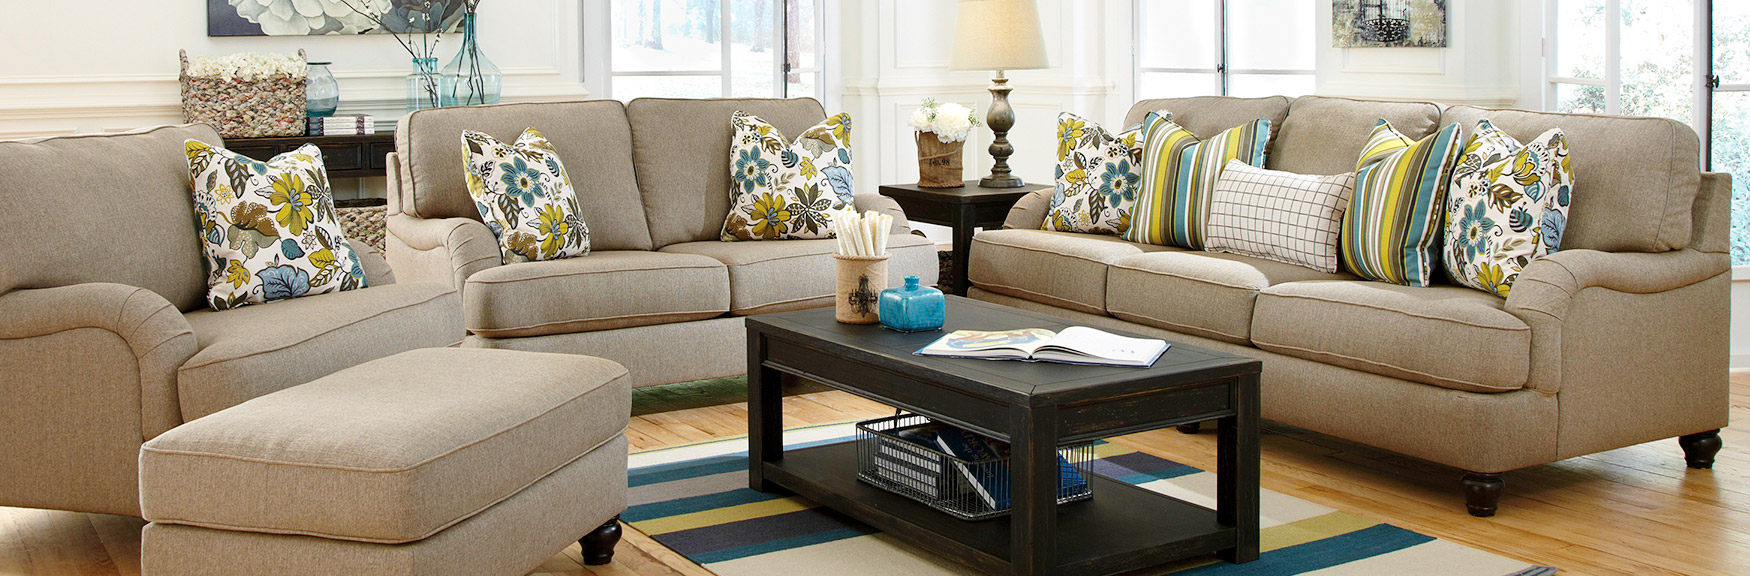 Affordable Home Furniture For Sale Online Click N Furnish